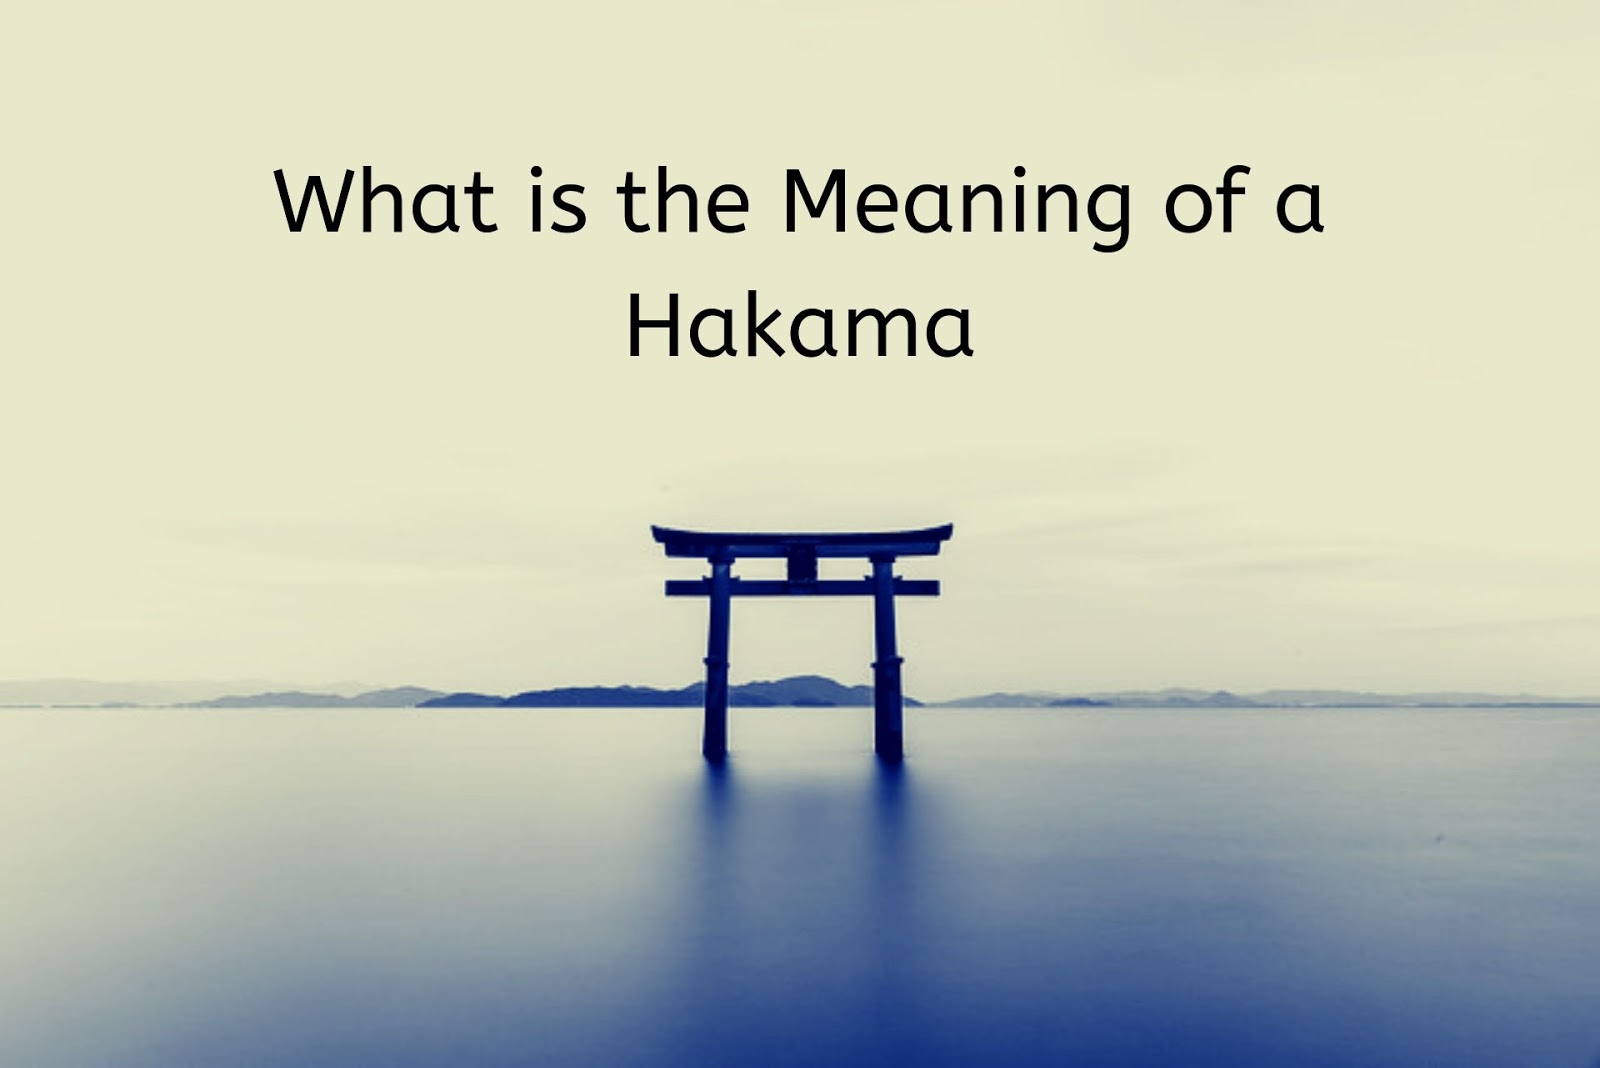 What is the meaning of a Hakama?